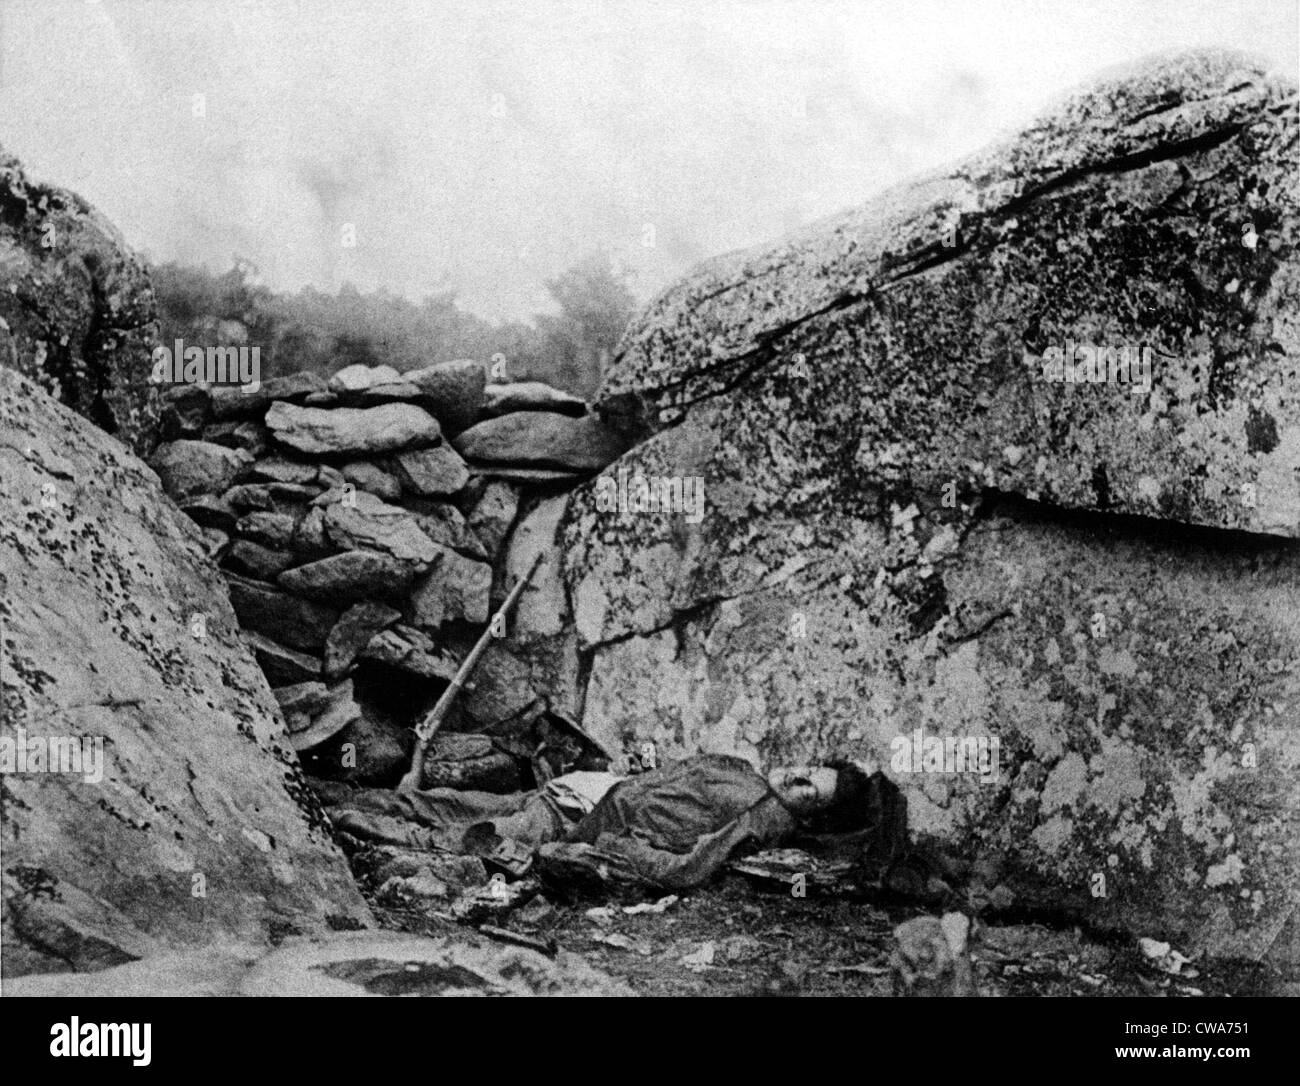 BATTLE OF GETTYSBURG-The body of a sharpshooter at his post.. Courtesy: CSU Archives / Everett Collection - Stock Image